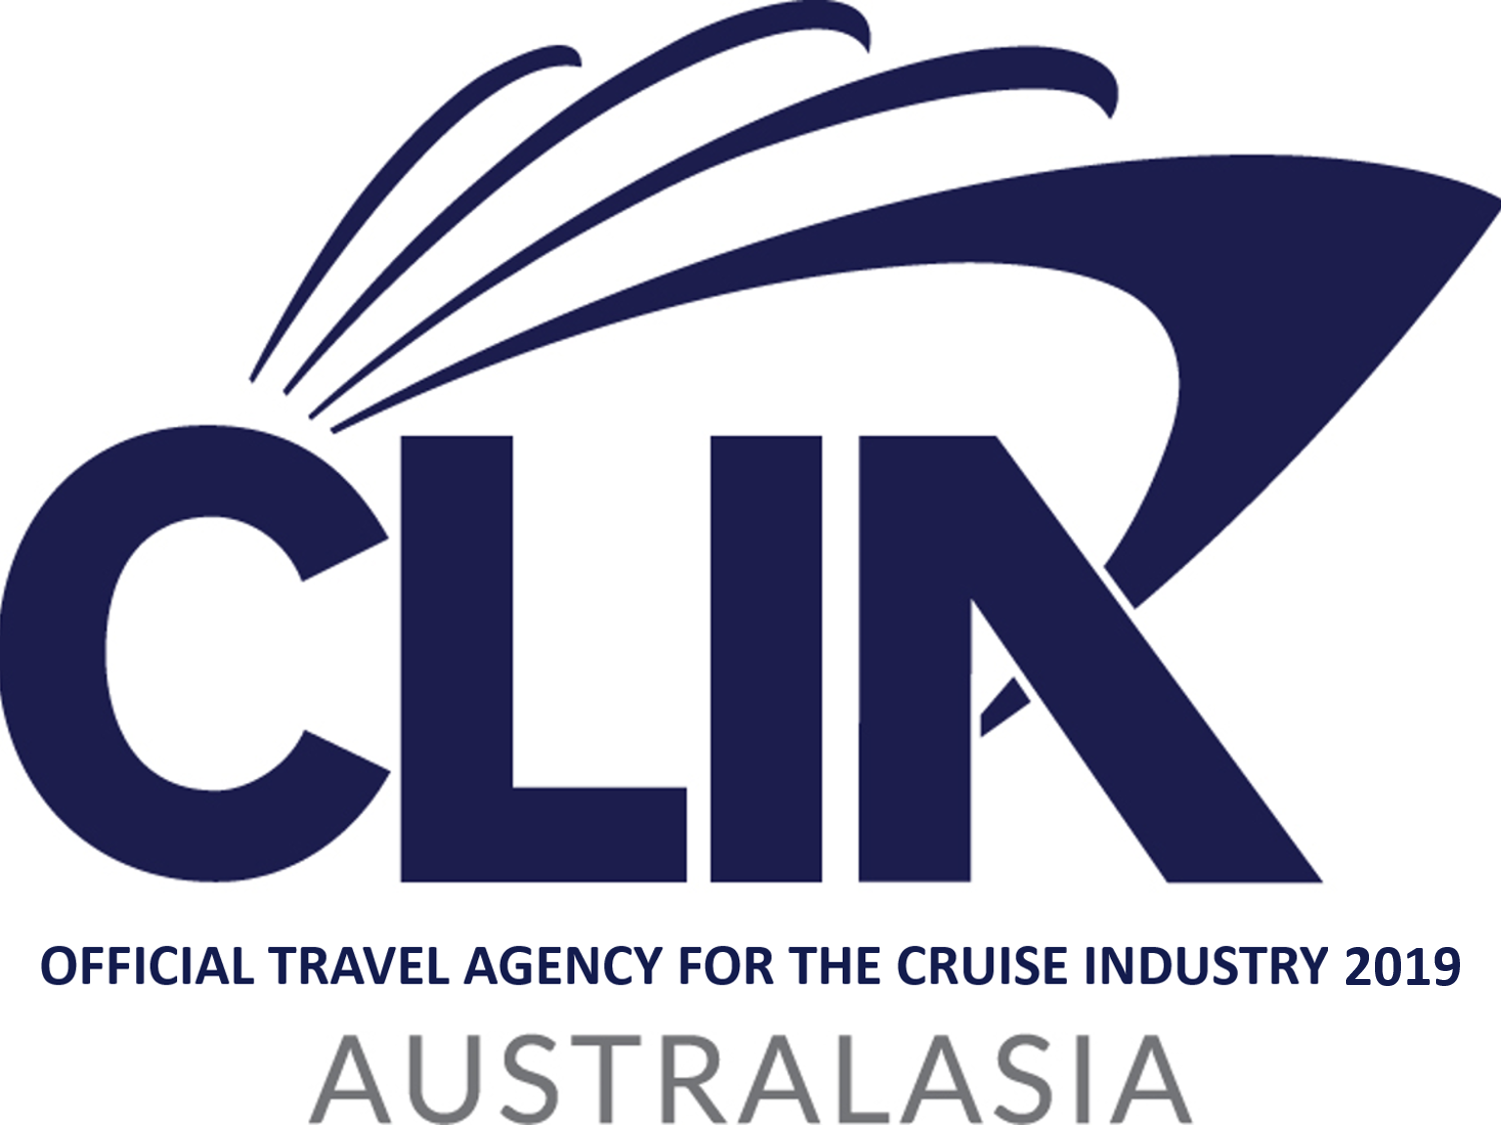 Cruise Lines International Association of Australia Member